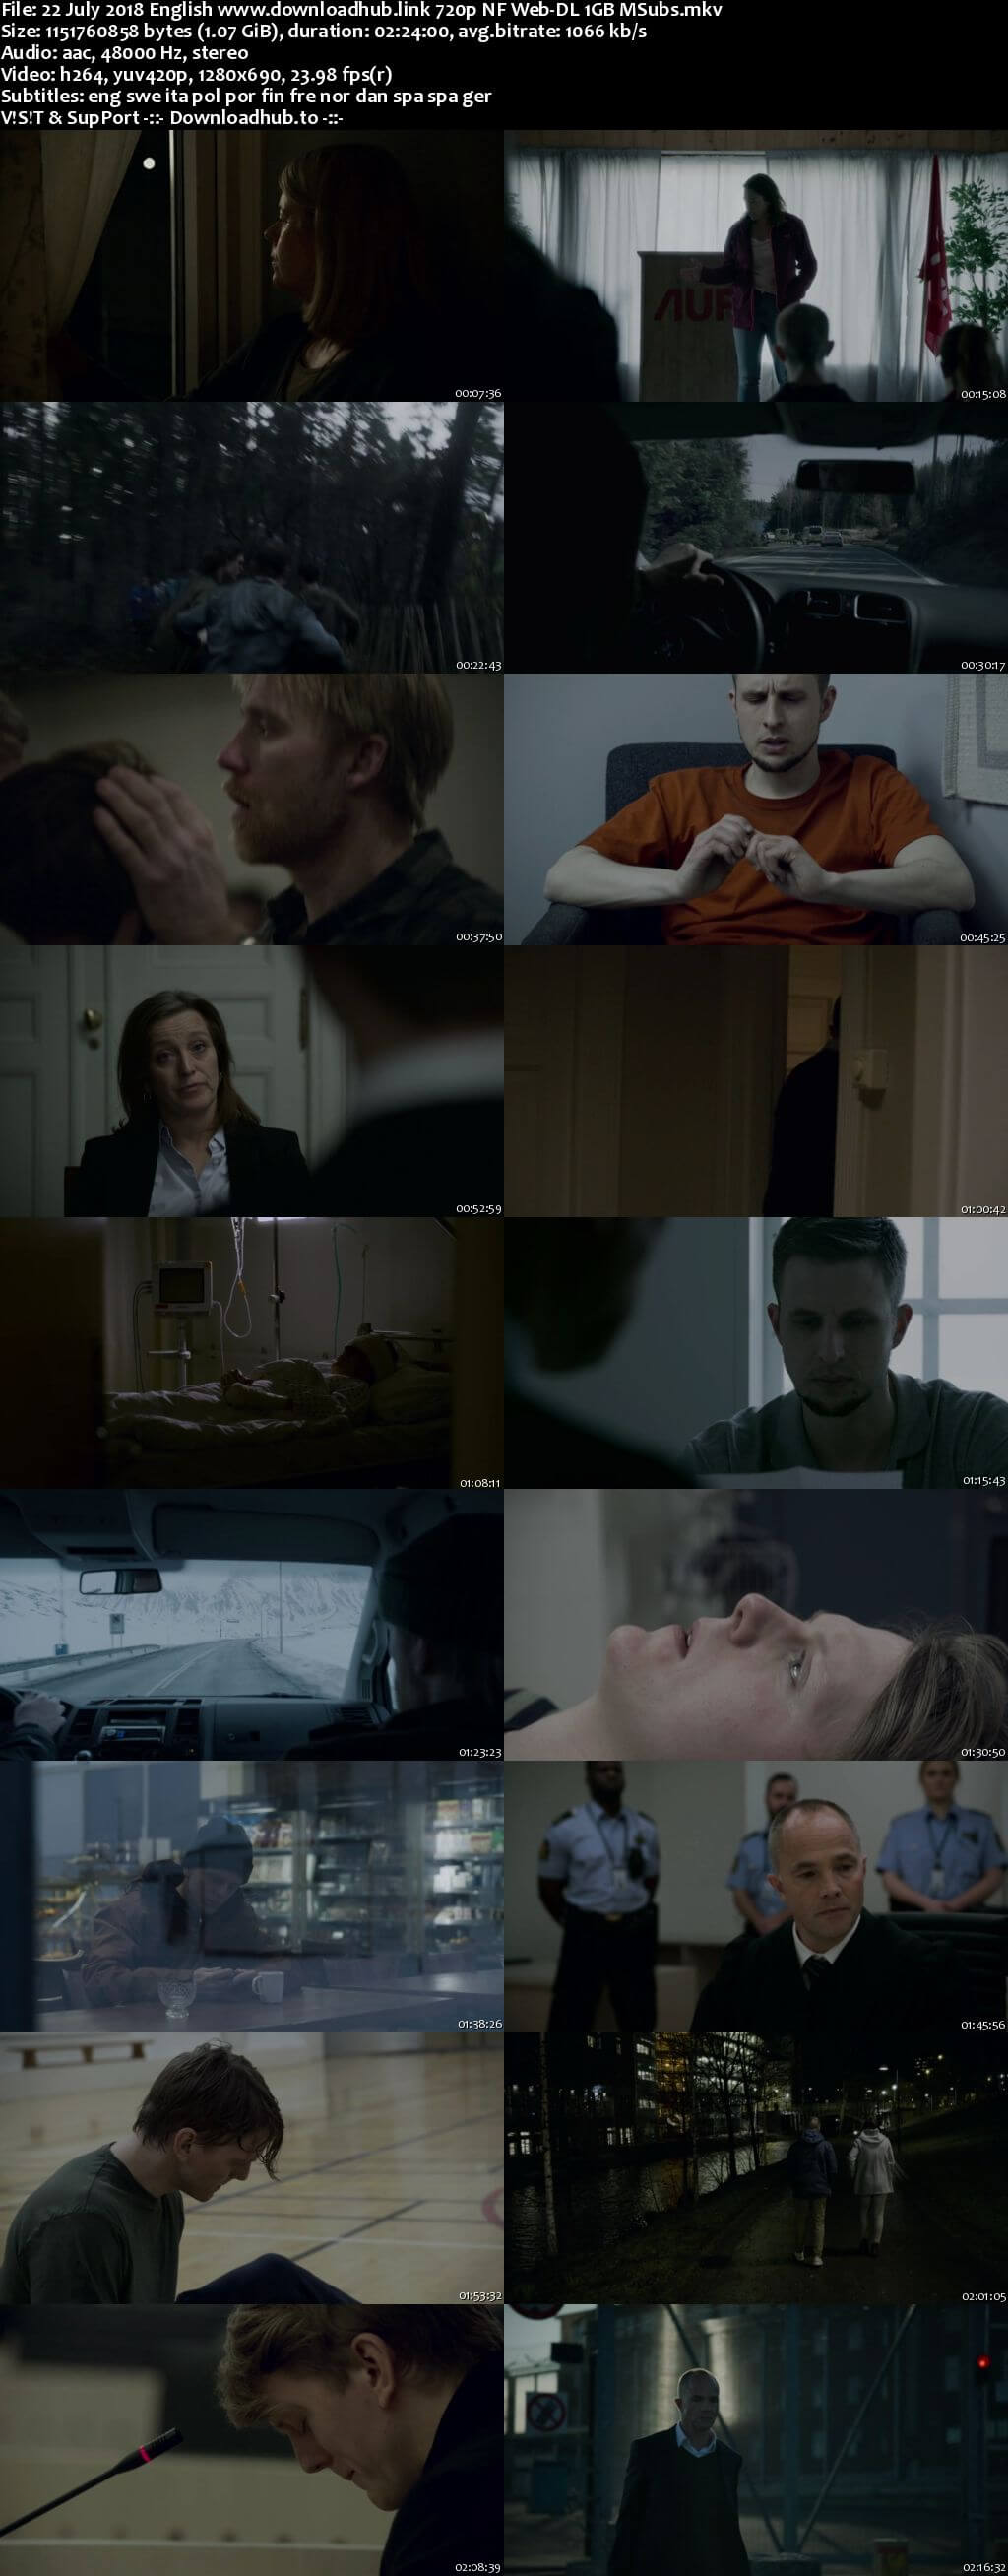 22 July 2018 English 720p NF Web-DL 1GB MSubs